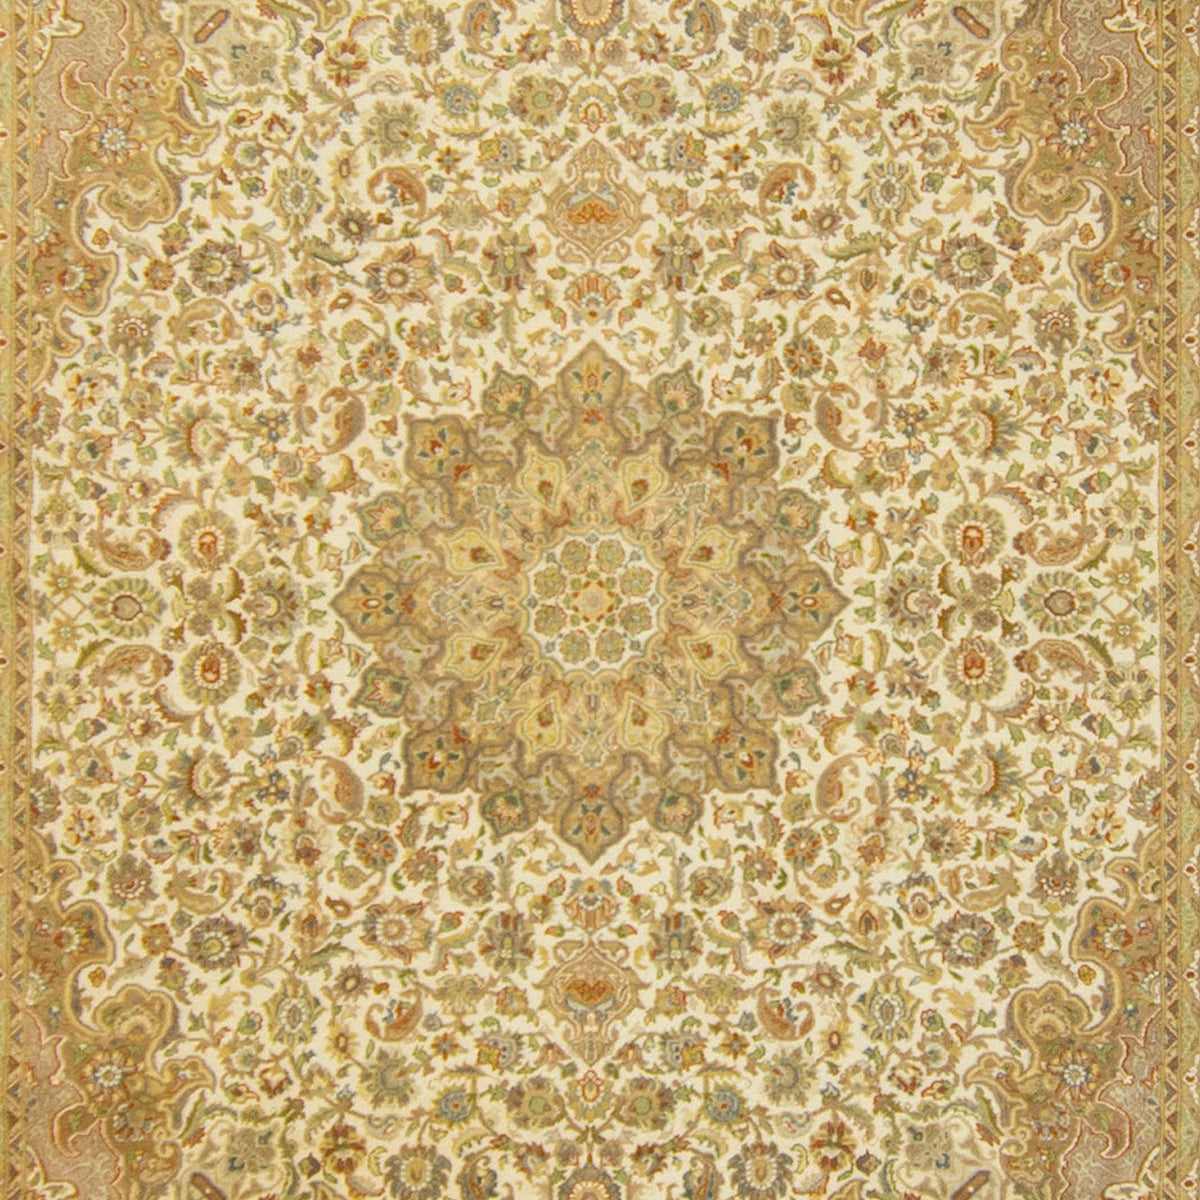 Super Fine Wool & Silk Kerman Rug 246cm x 313cm Persian-Rug | House-of-Haghi | NewMarket | Auckland | NZ | Handmade Persian Rugs | Hand Knotted Persian Rugs